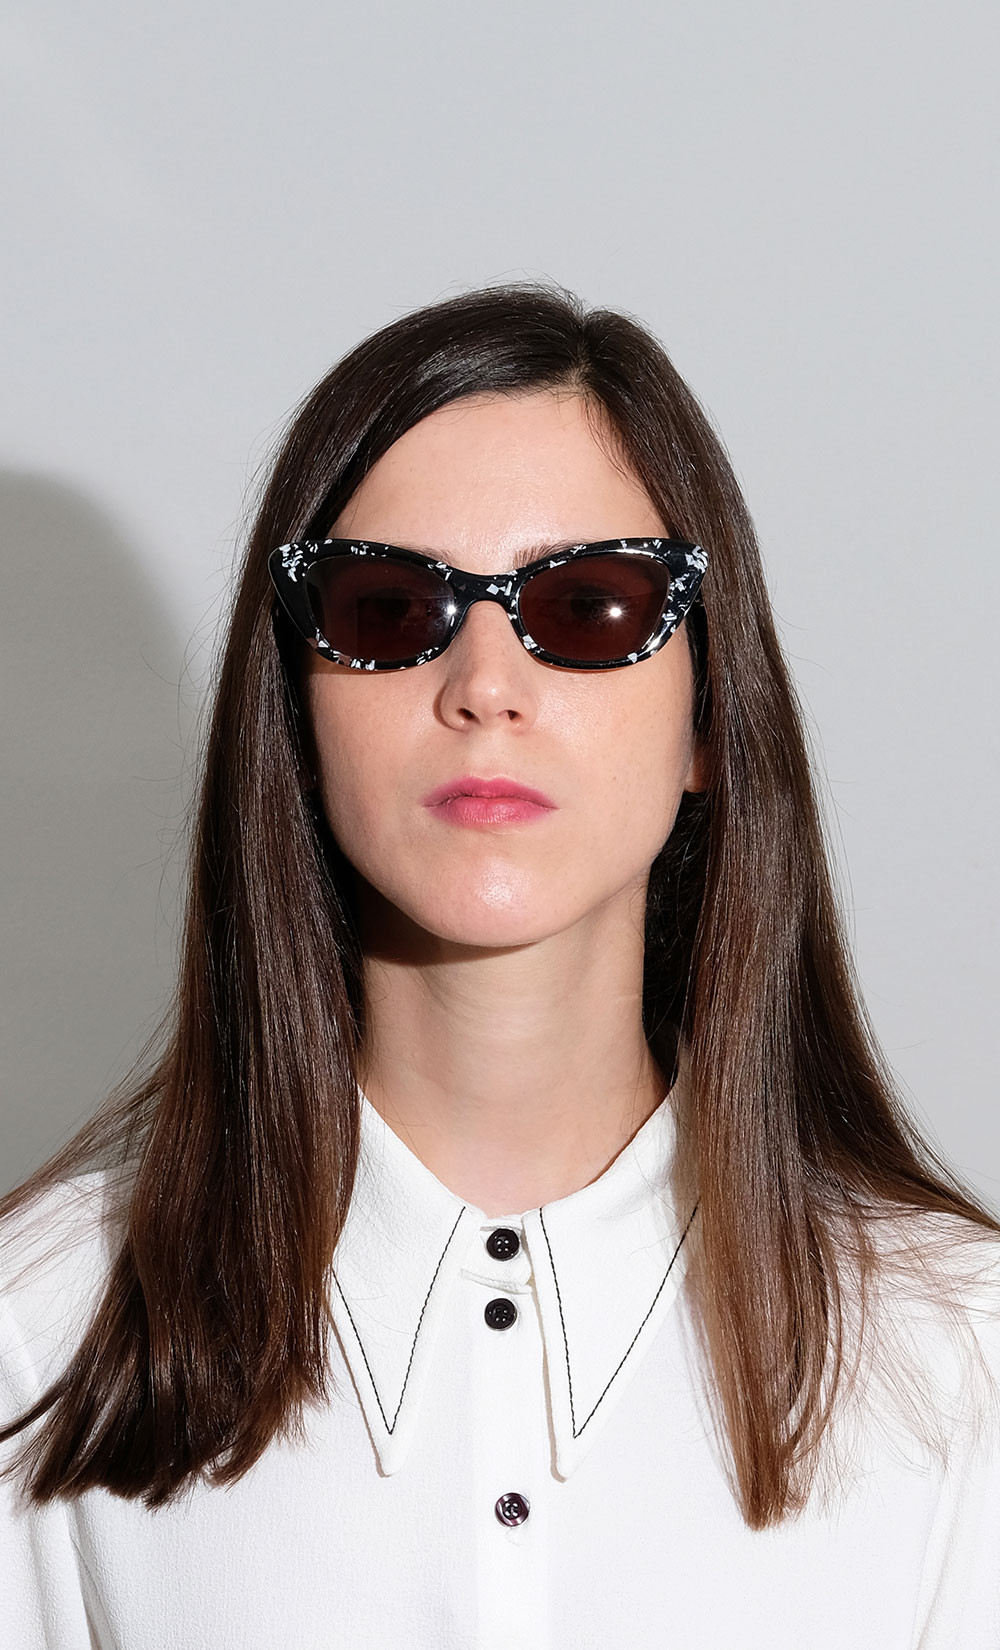 Dorin's Cat-Eye Sunglasses